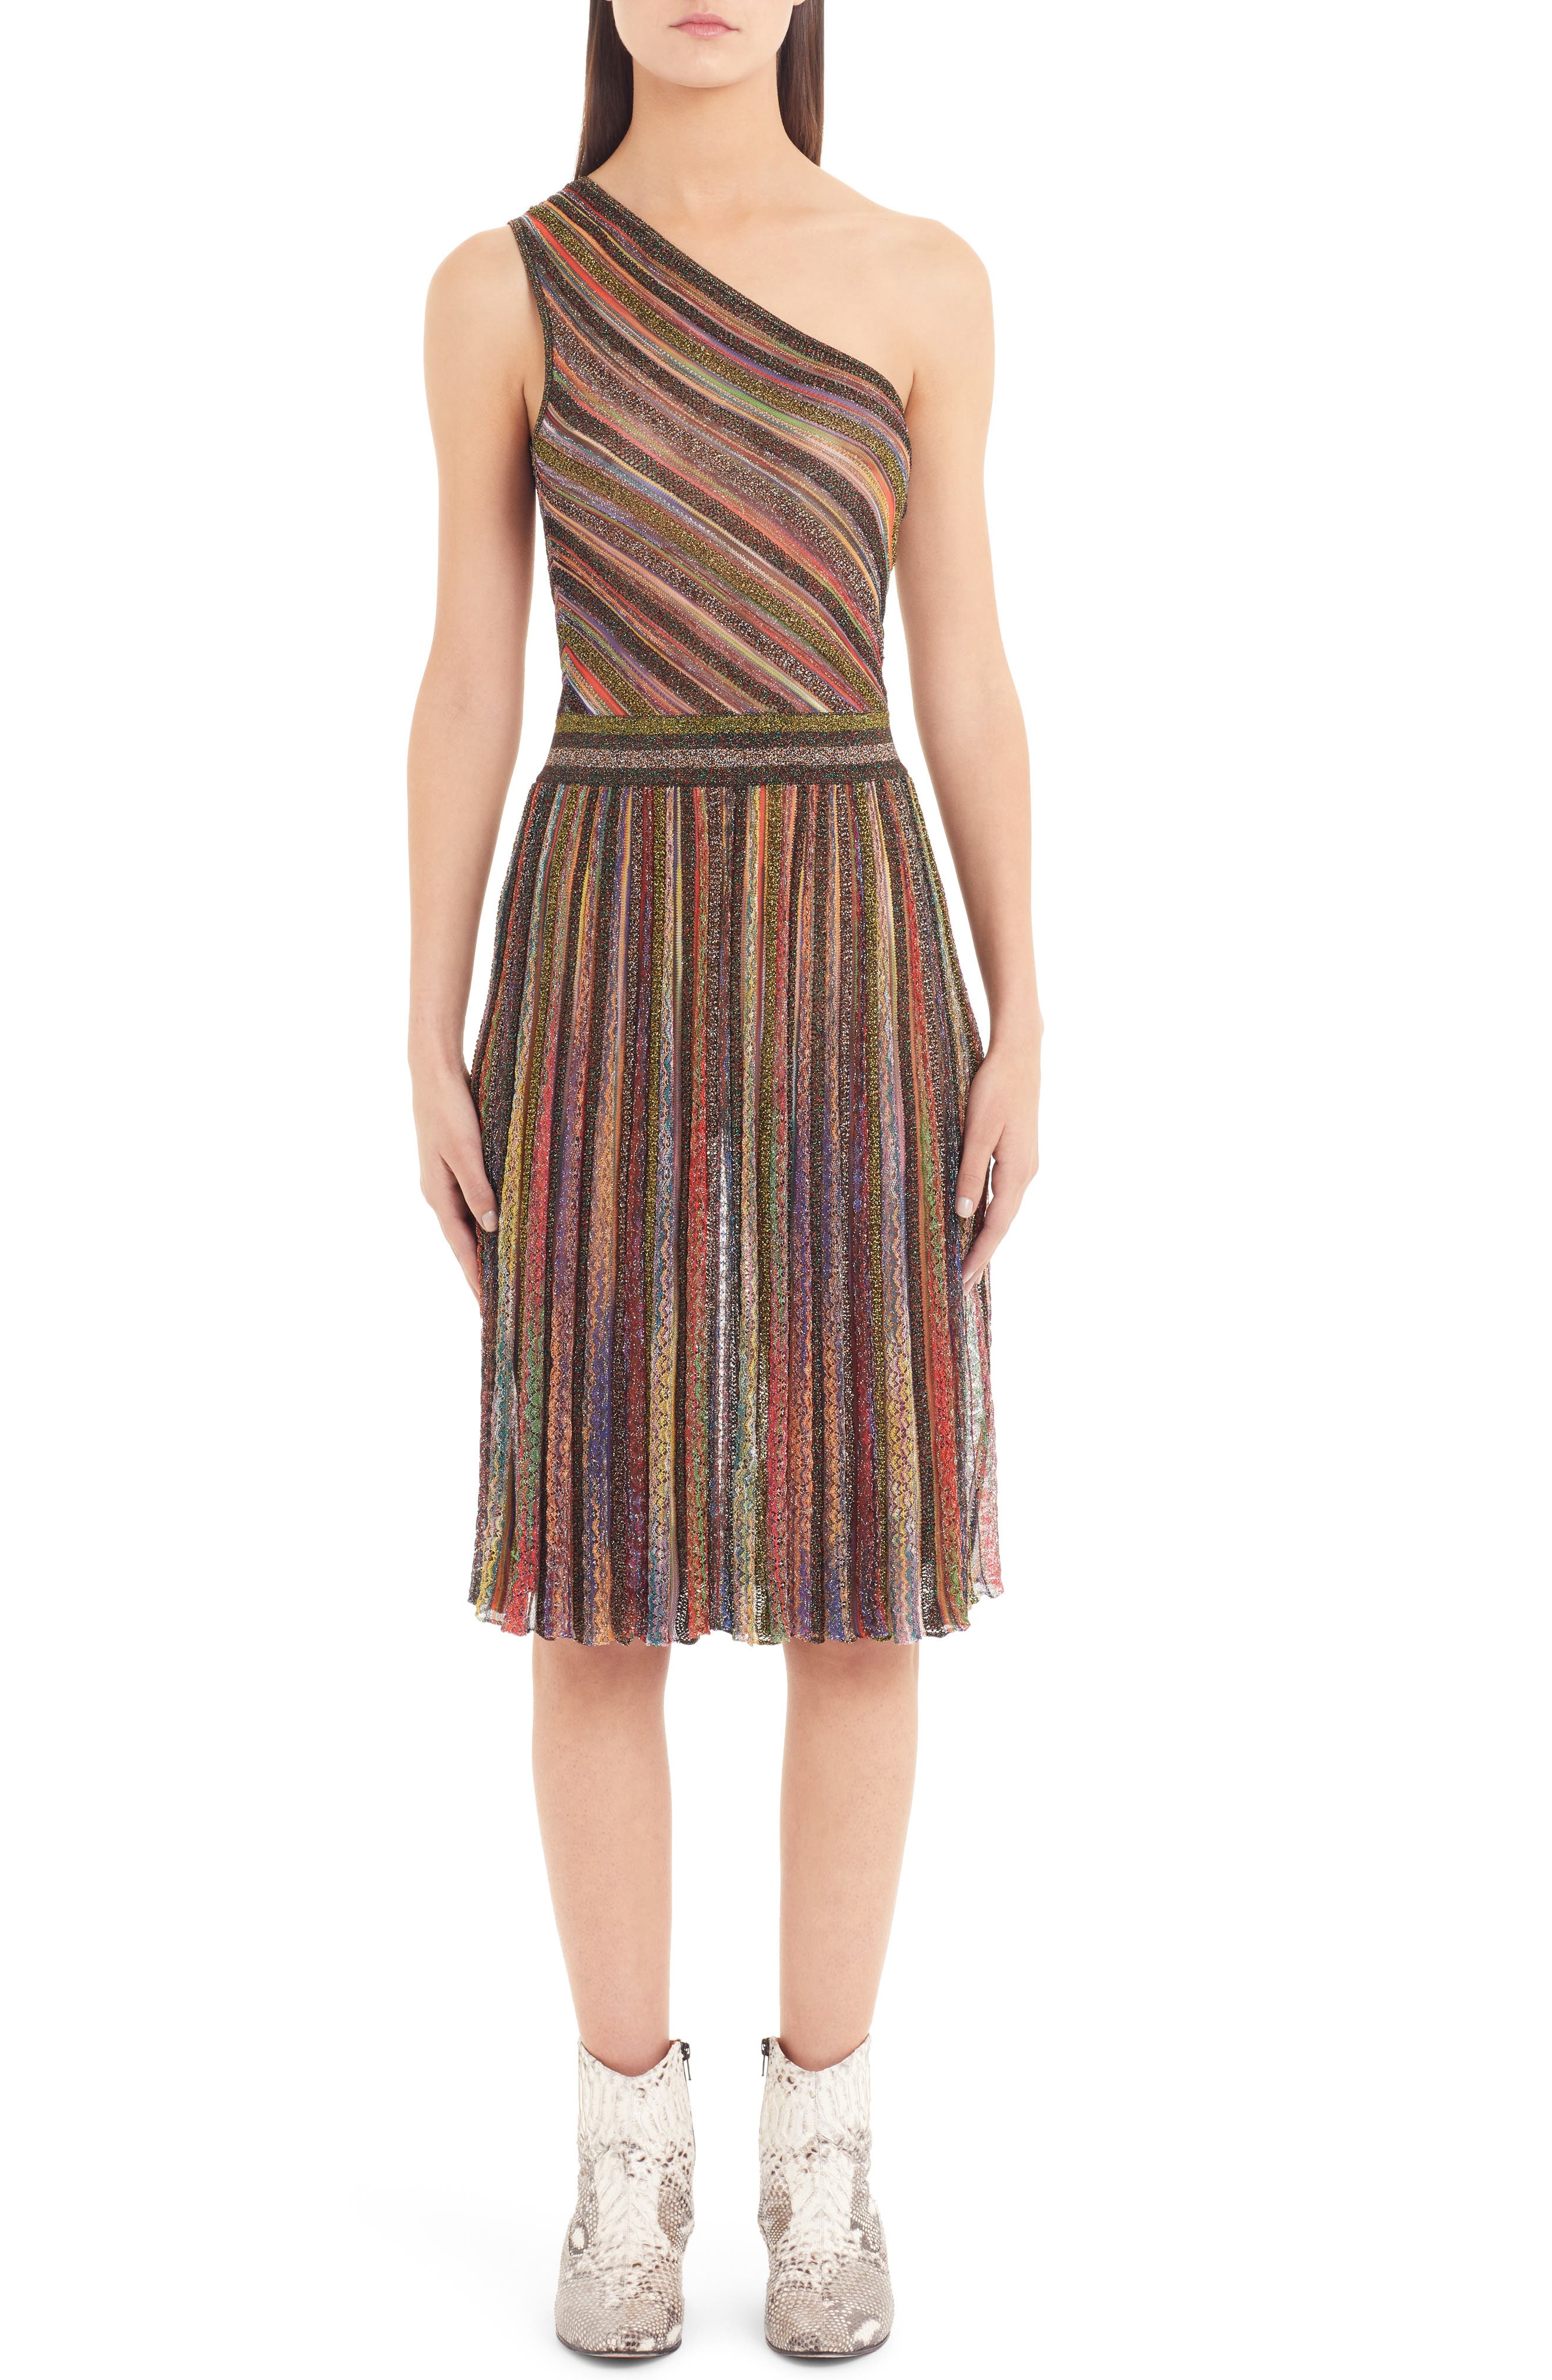 One-Shoulder 3-D Metallic Striped Short Dress in Grey